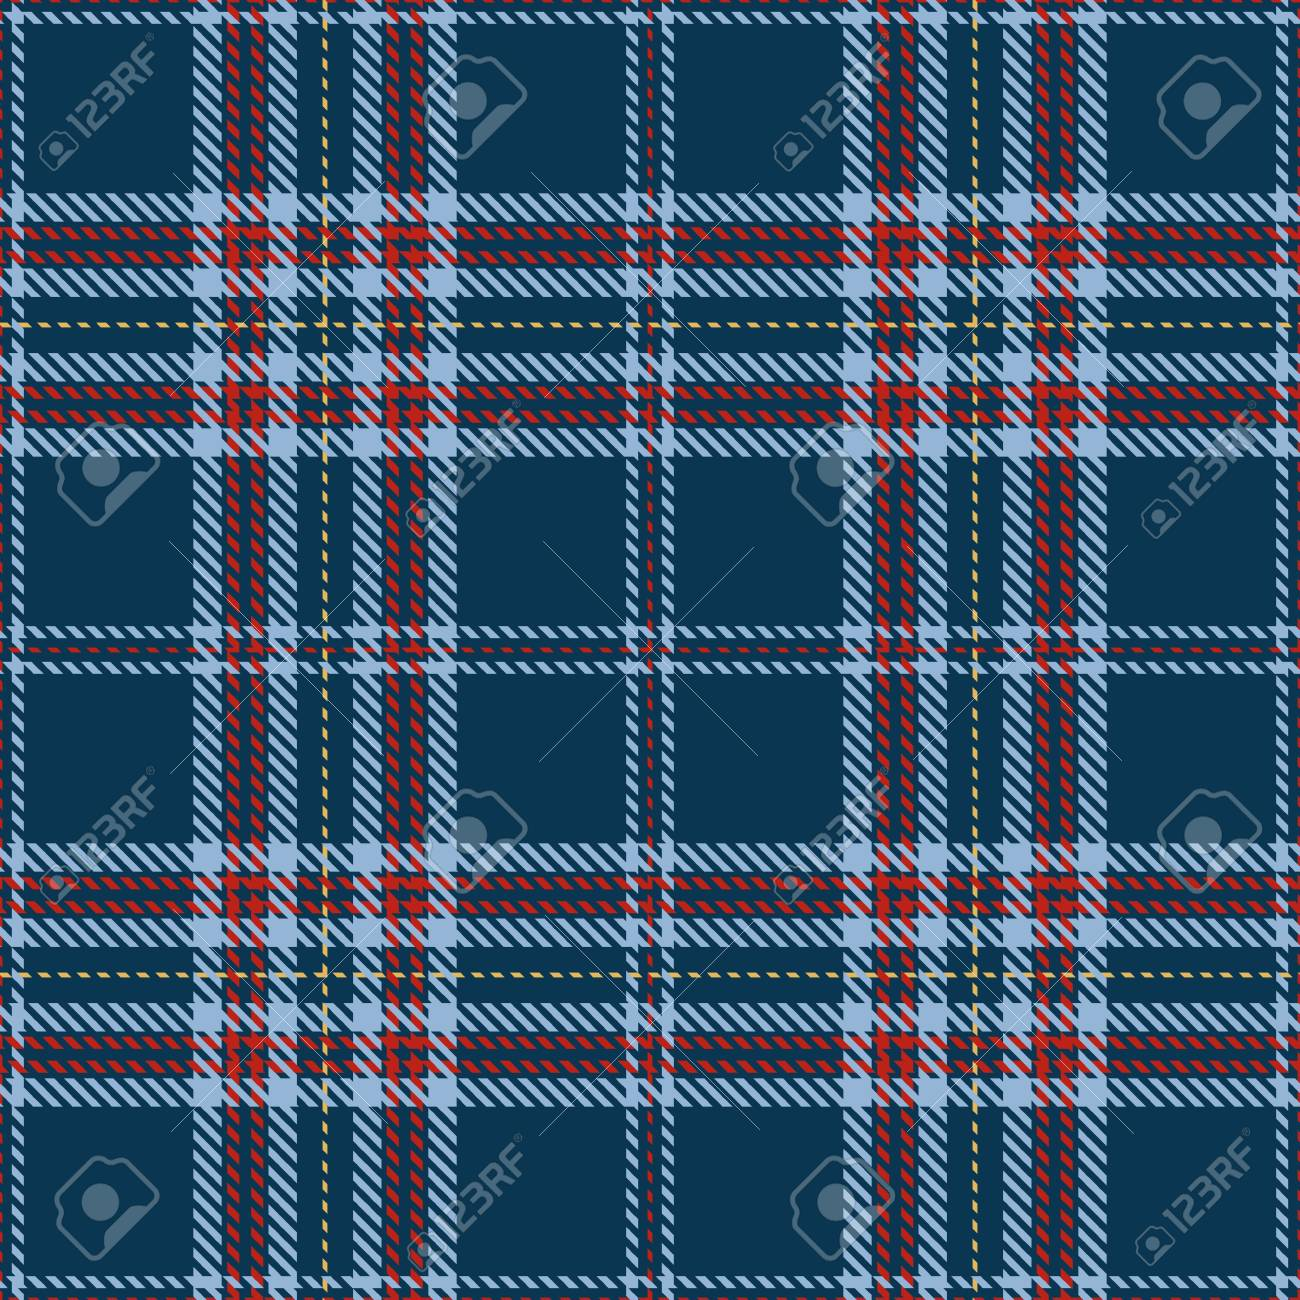 Elegant checkered Seamless Pattern Background. Red, Blue and Gold Plaid, Tartan Flannel Shirt Patterns. Trendy Tiles Vector Illustration for Wallpapers. - 73904403